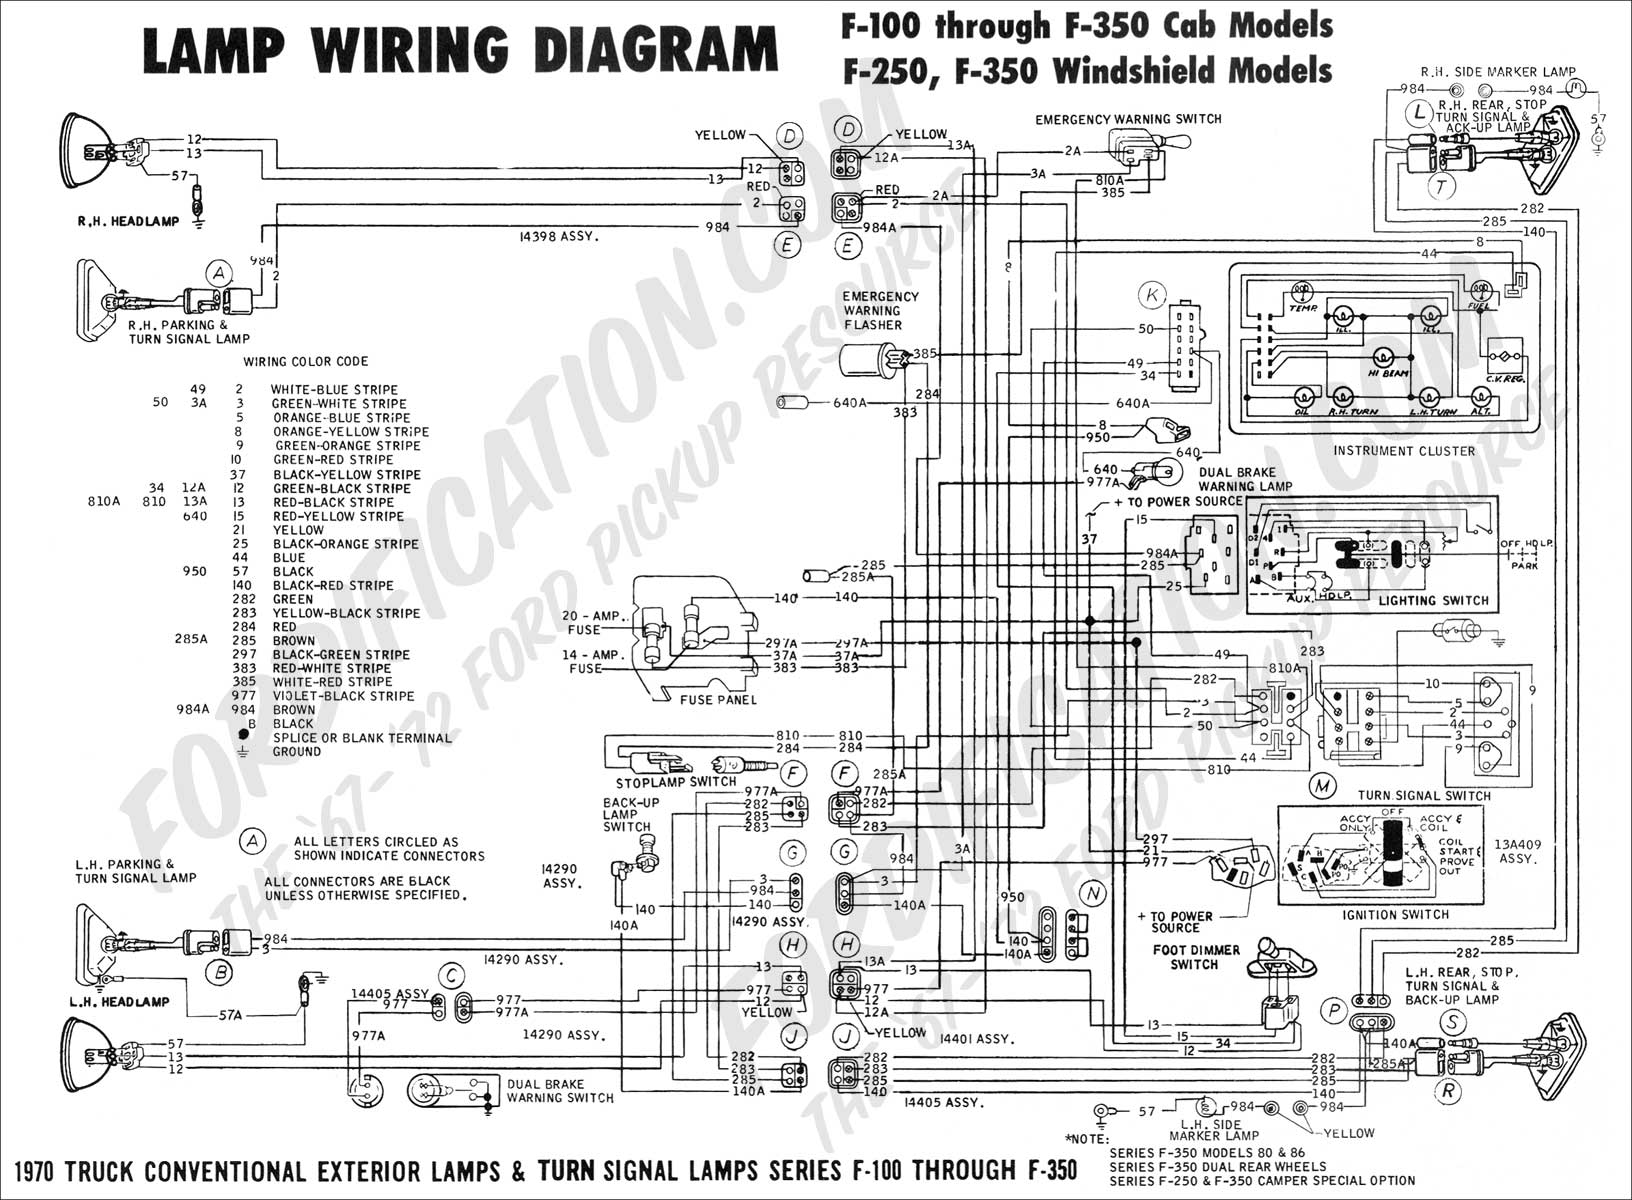 1971 Ford F100 Tail Light Wiring Diagram Ford F150 Wiring